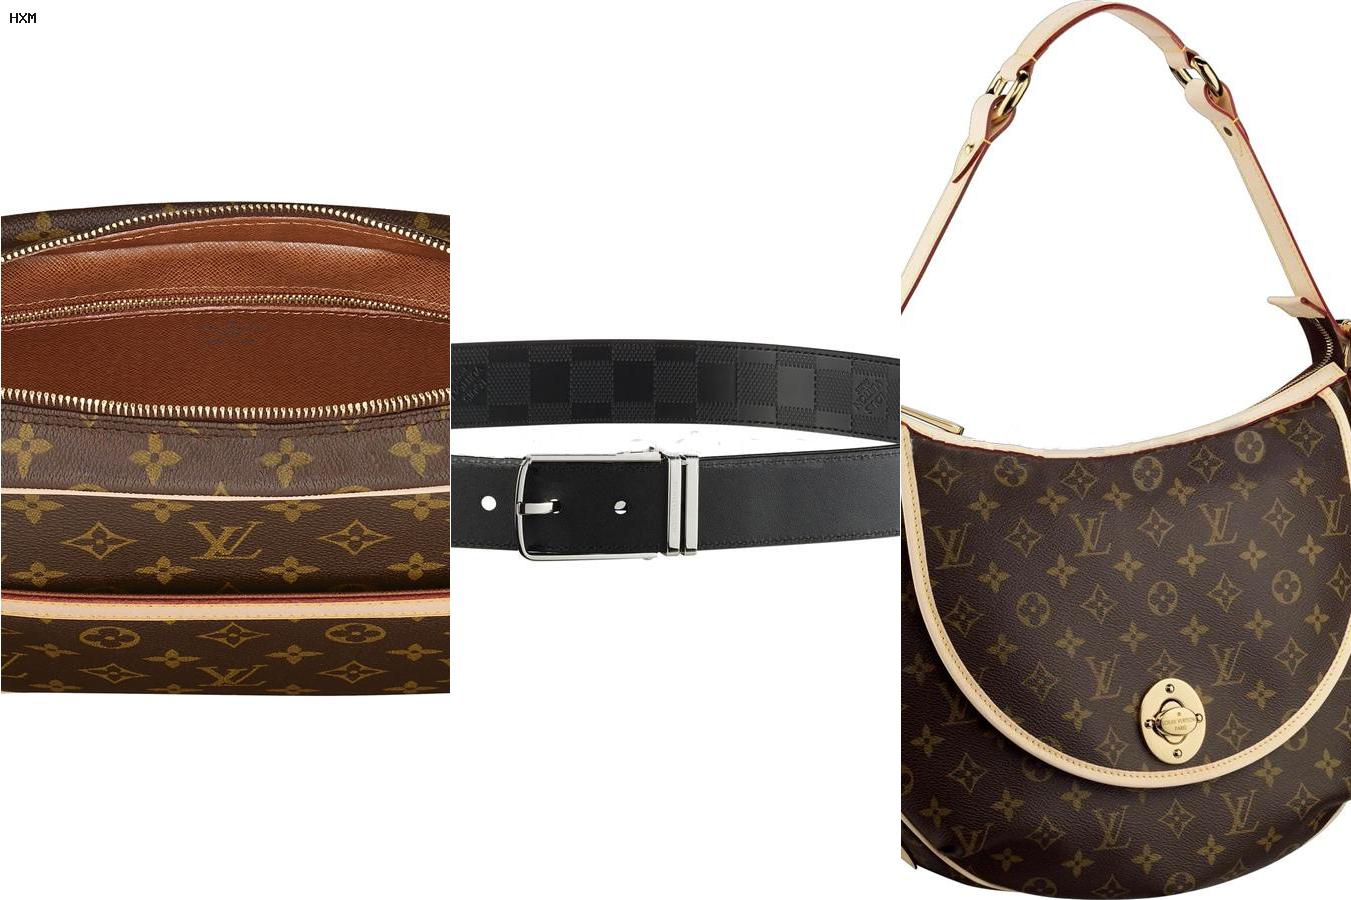 mochila louis vuitton masculina replica